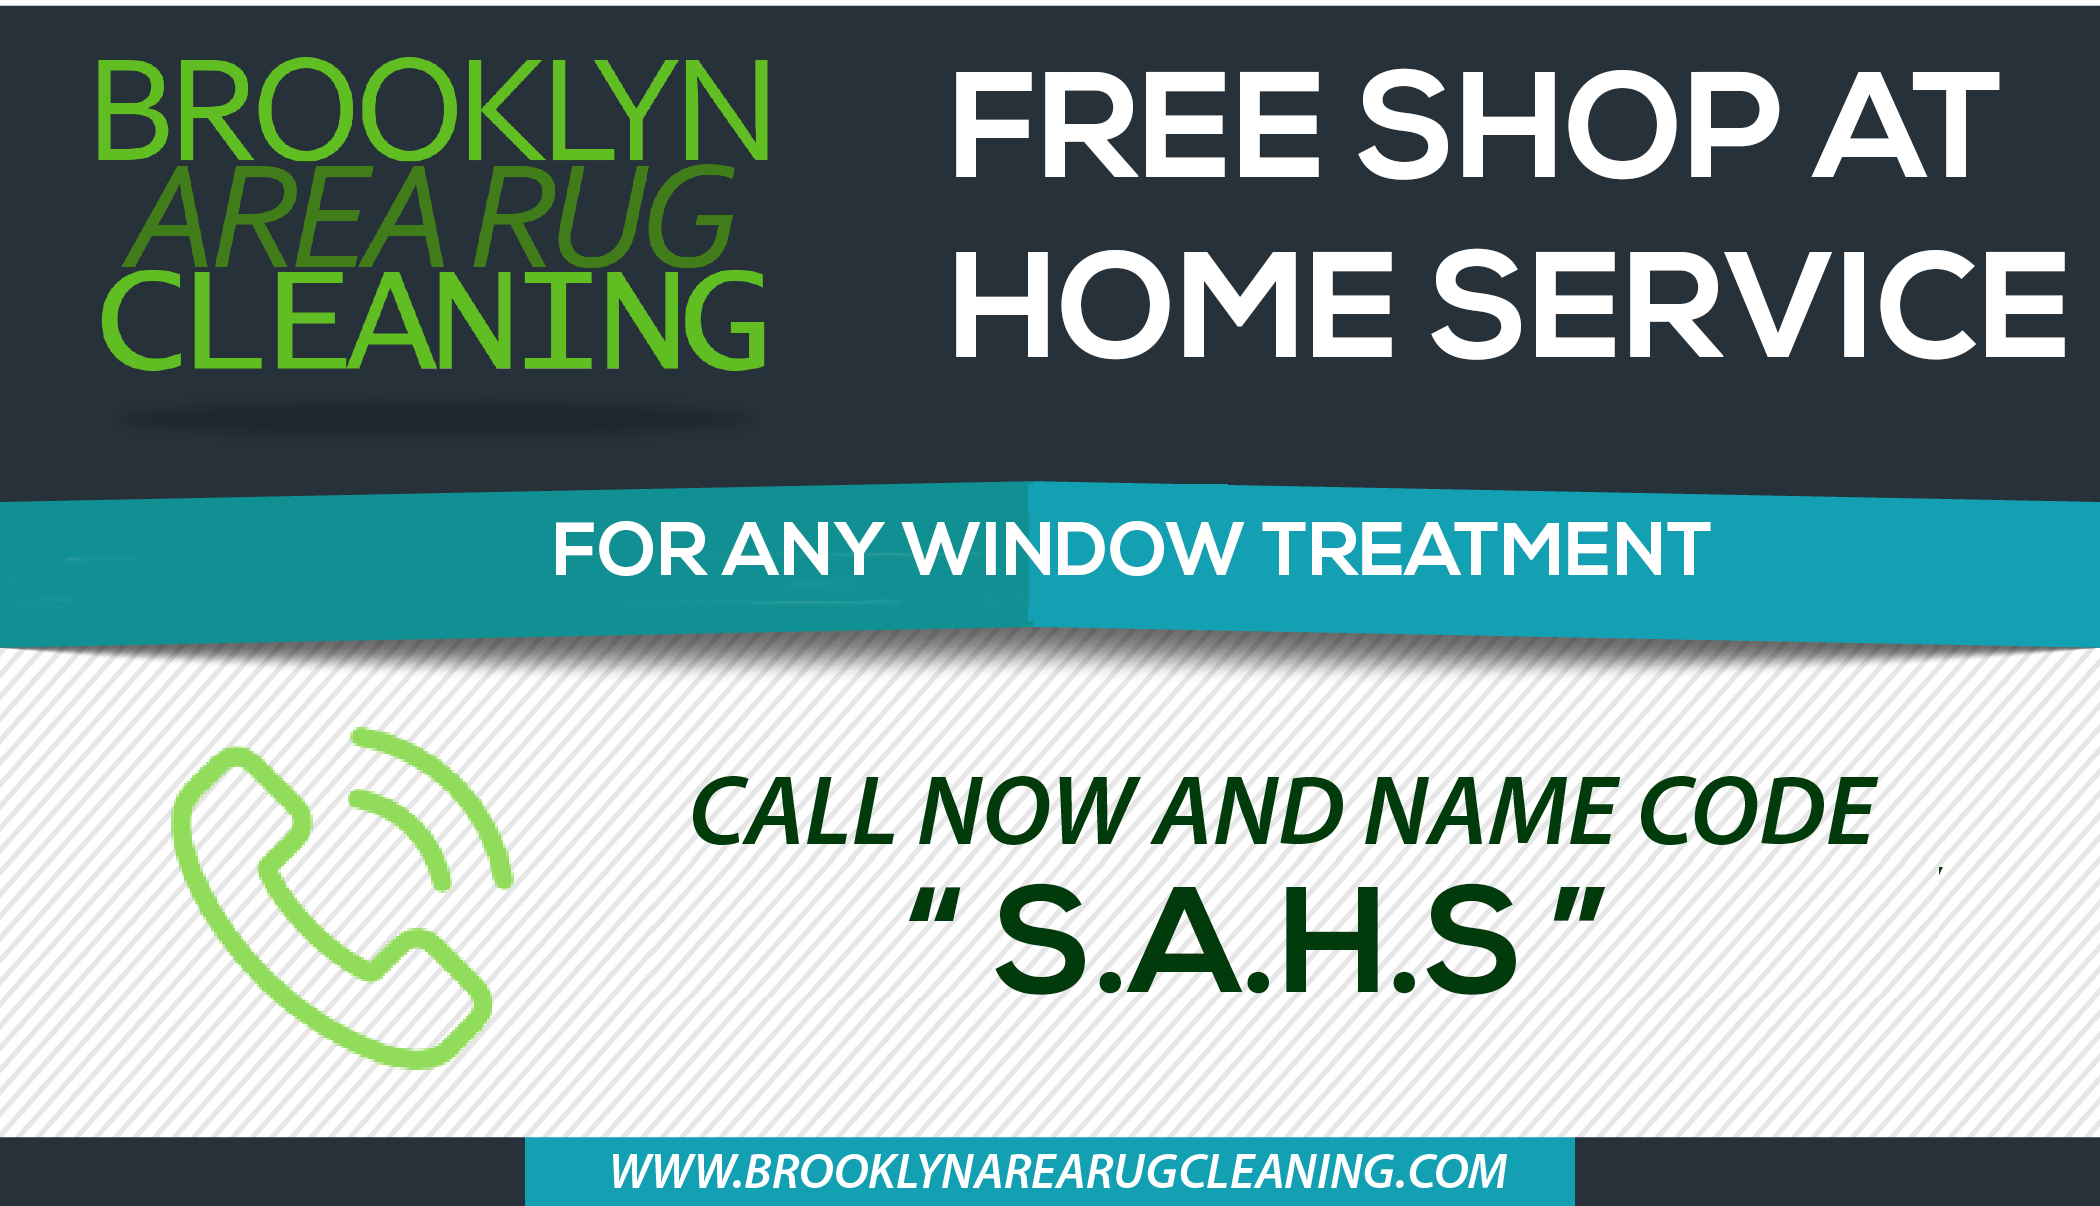 FOR ANY WINDOW TREATMENT